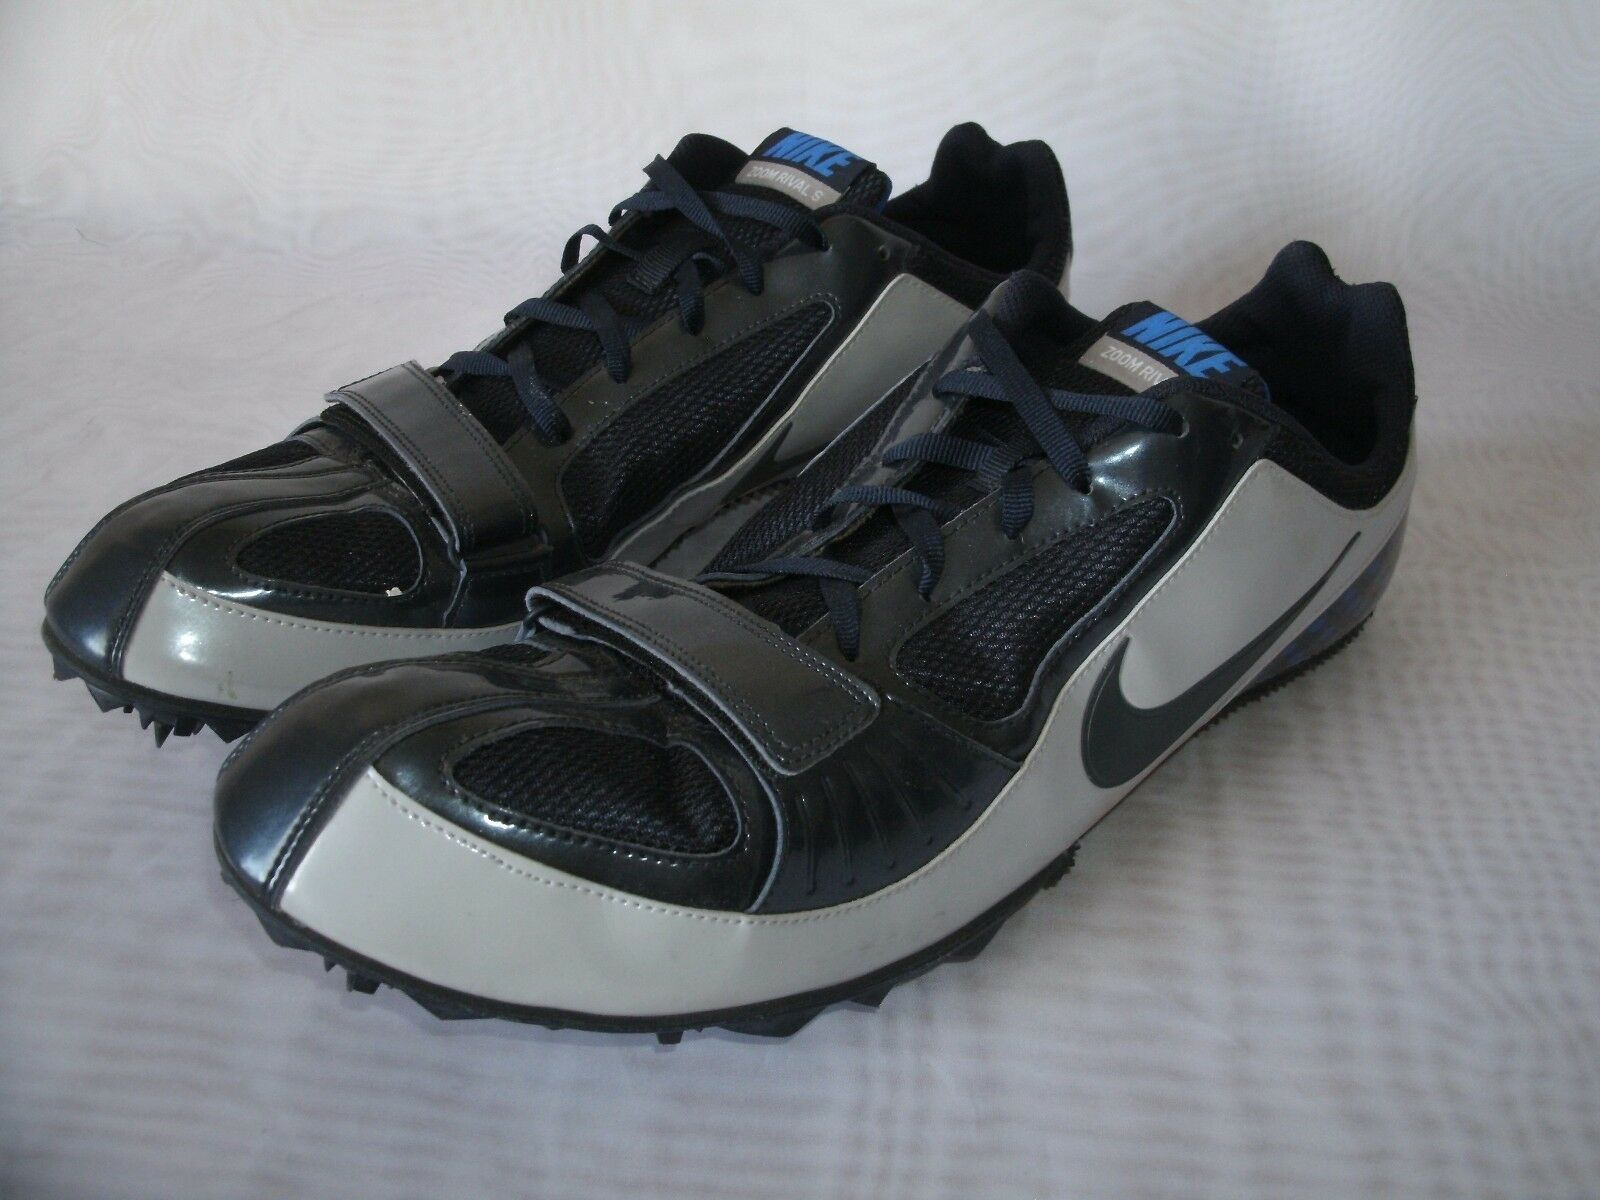 5efe241252a16 NIKE ZOOM RIVAL S S S BOWERMAN SERIES SPIKES CLEATS   SIZE US 15   MEN S  c00fcd